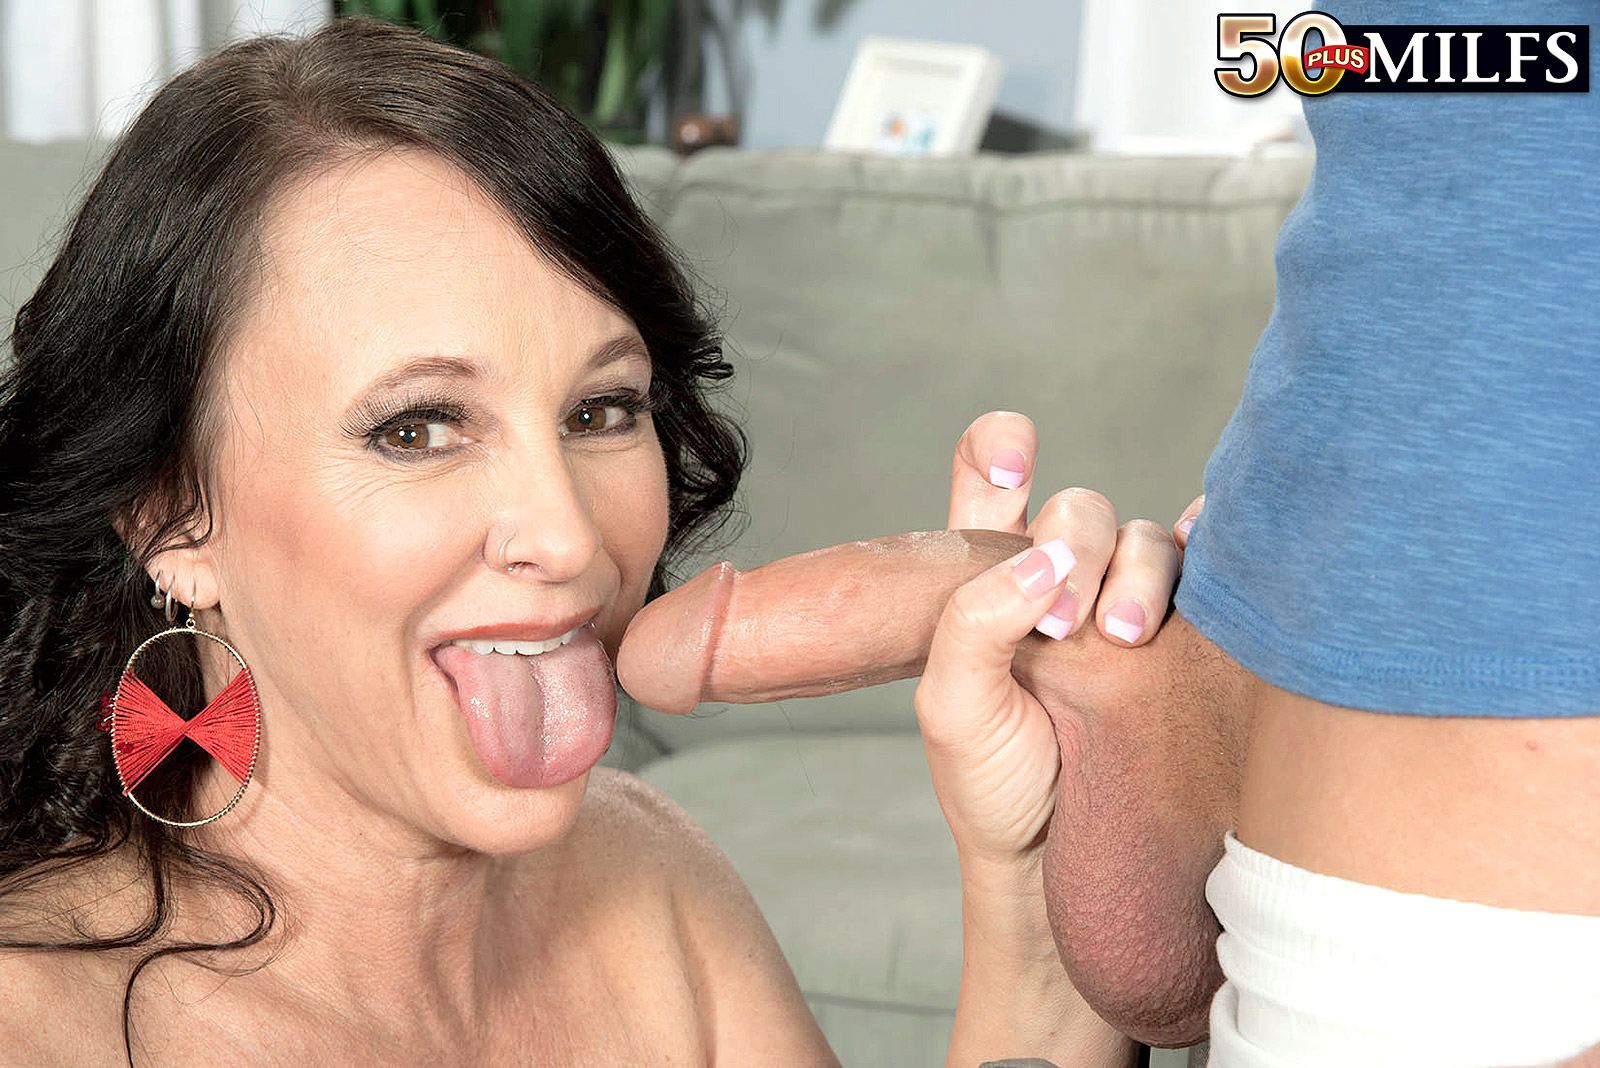 Lexi Ambrose 55 years old from east coast delivering an  unforgettable  blowjob  to a schoolboy